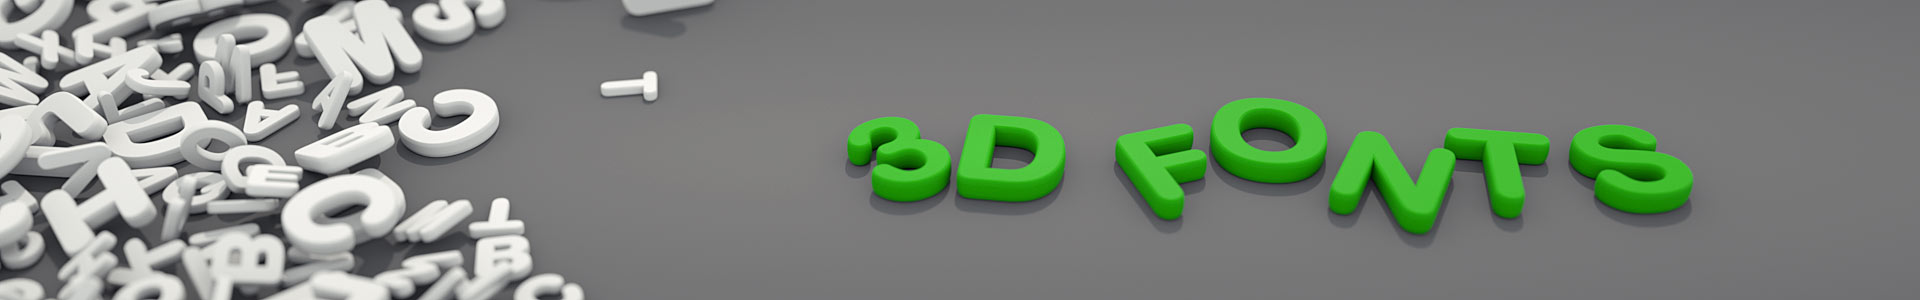 3d-fonts.com slide - 3d fonts, letters and signs at affordable prices